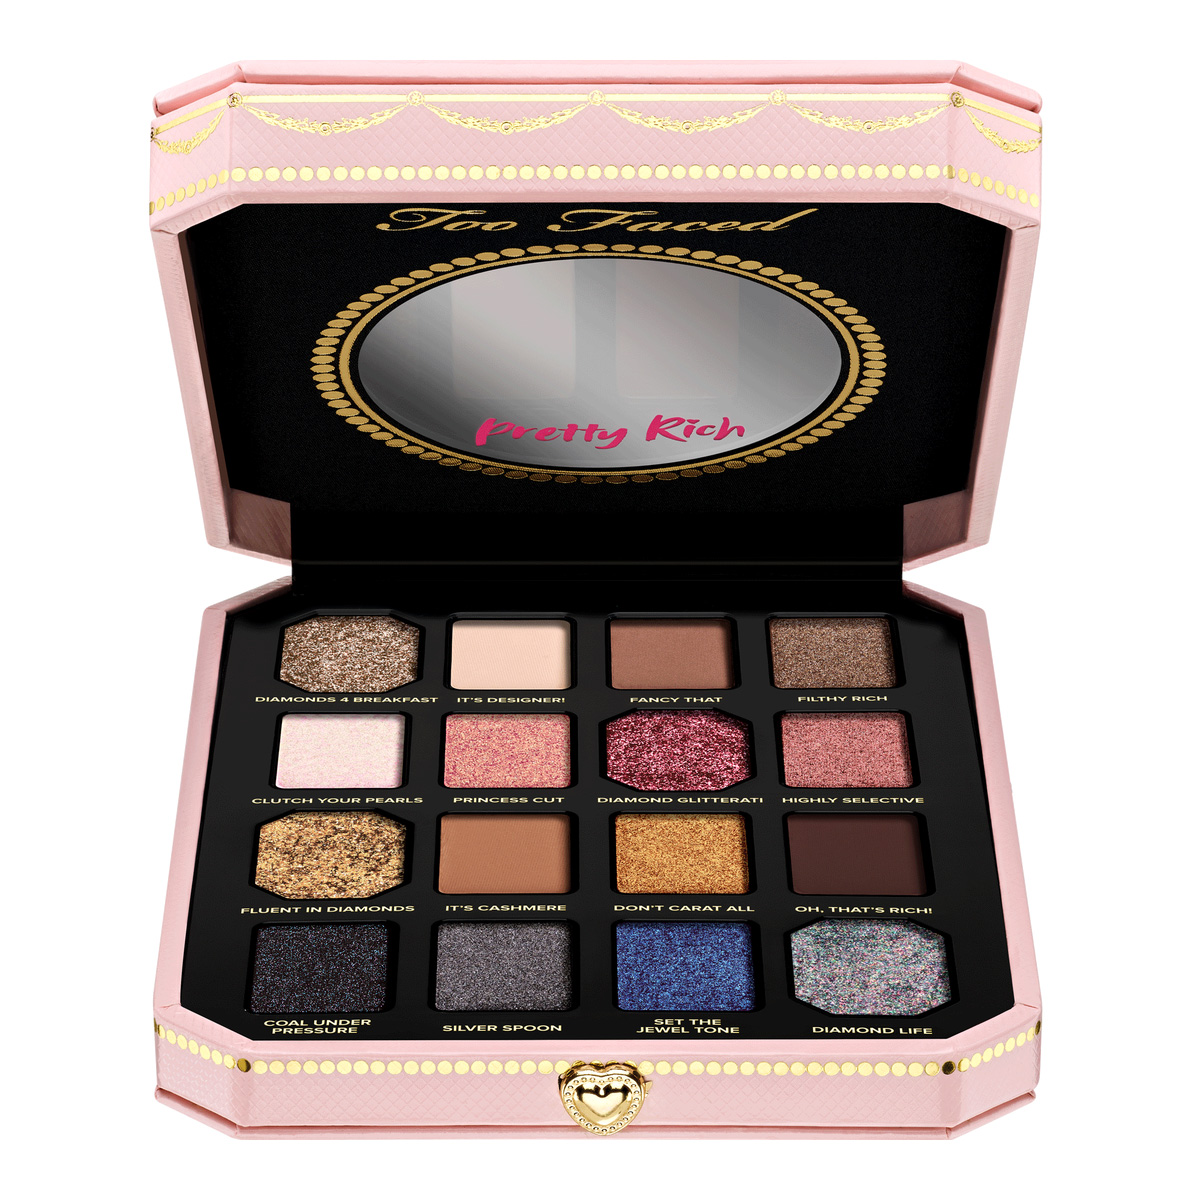 too-faced-pretty-rich-diamond-light-eyeshadow-palette-1